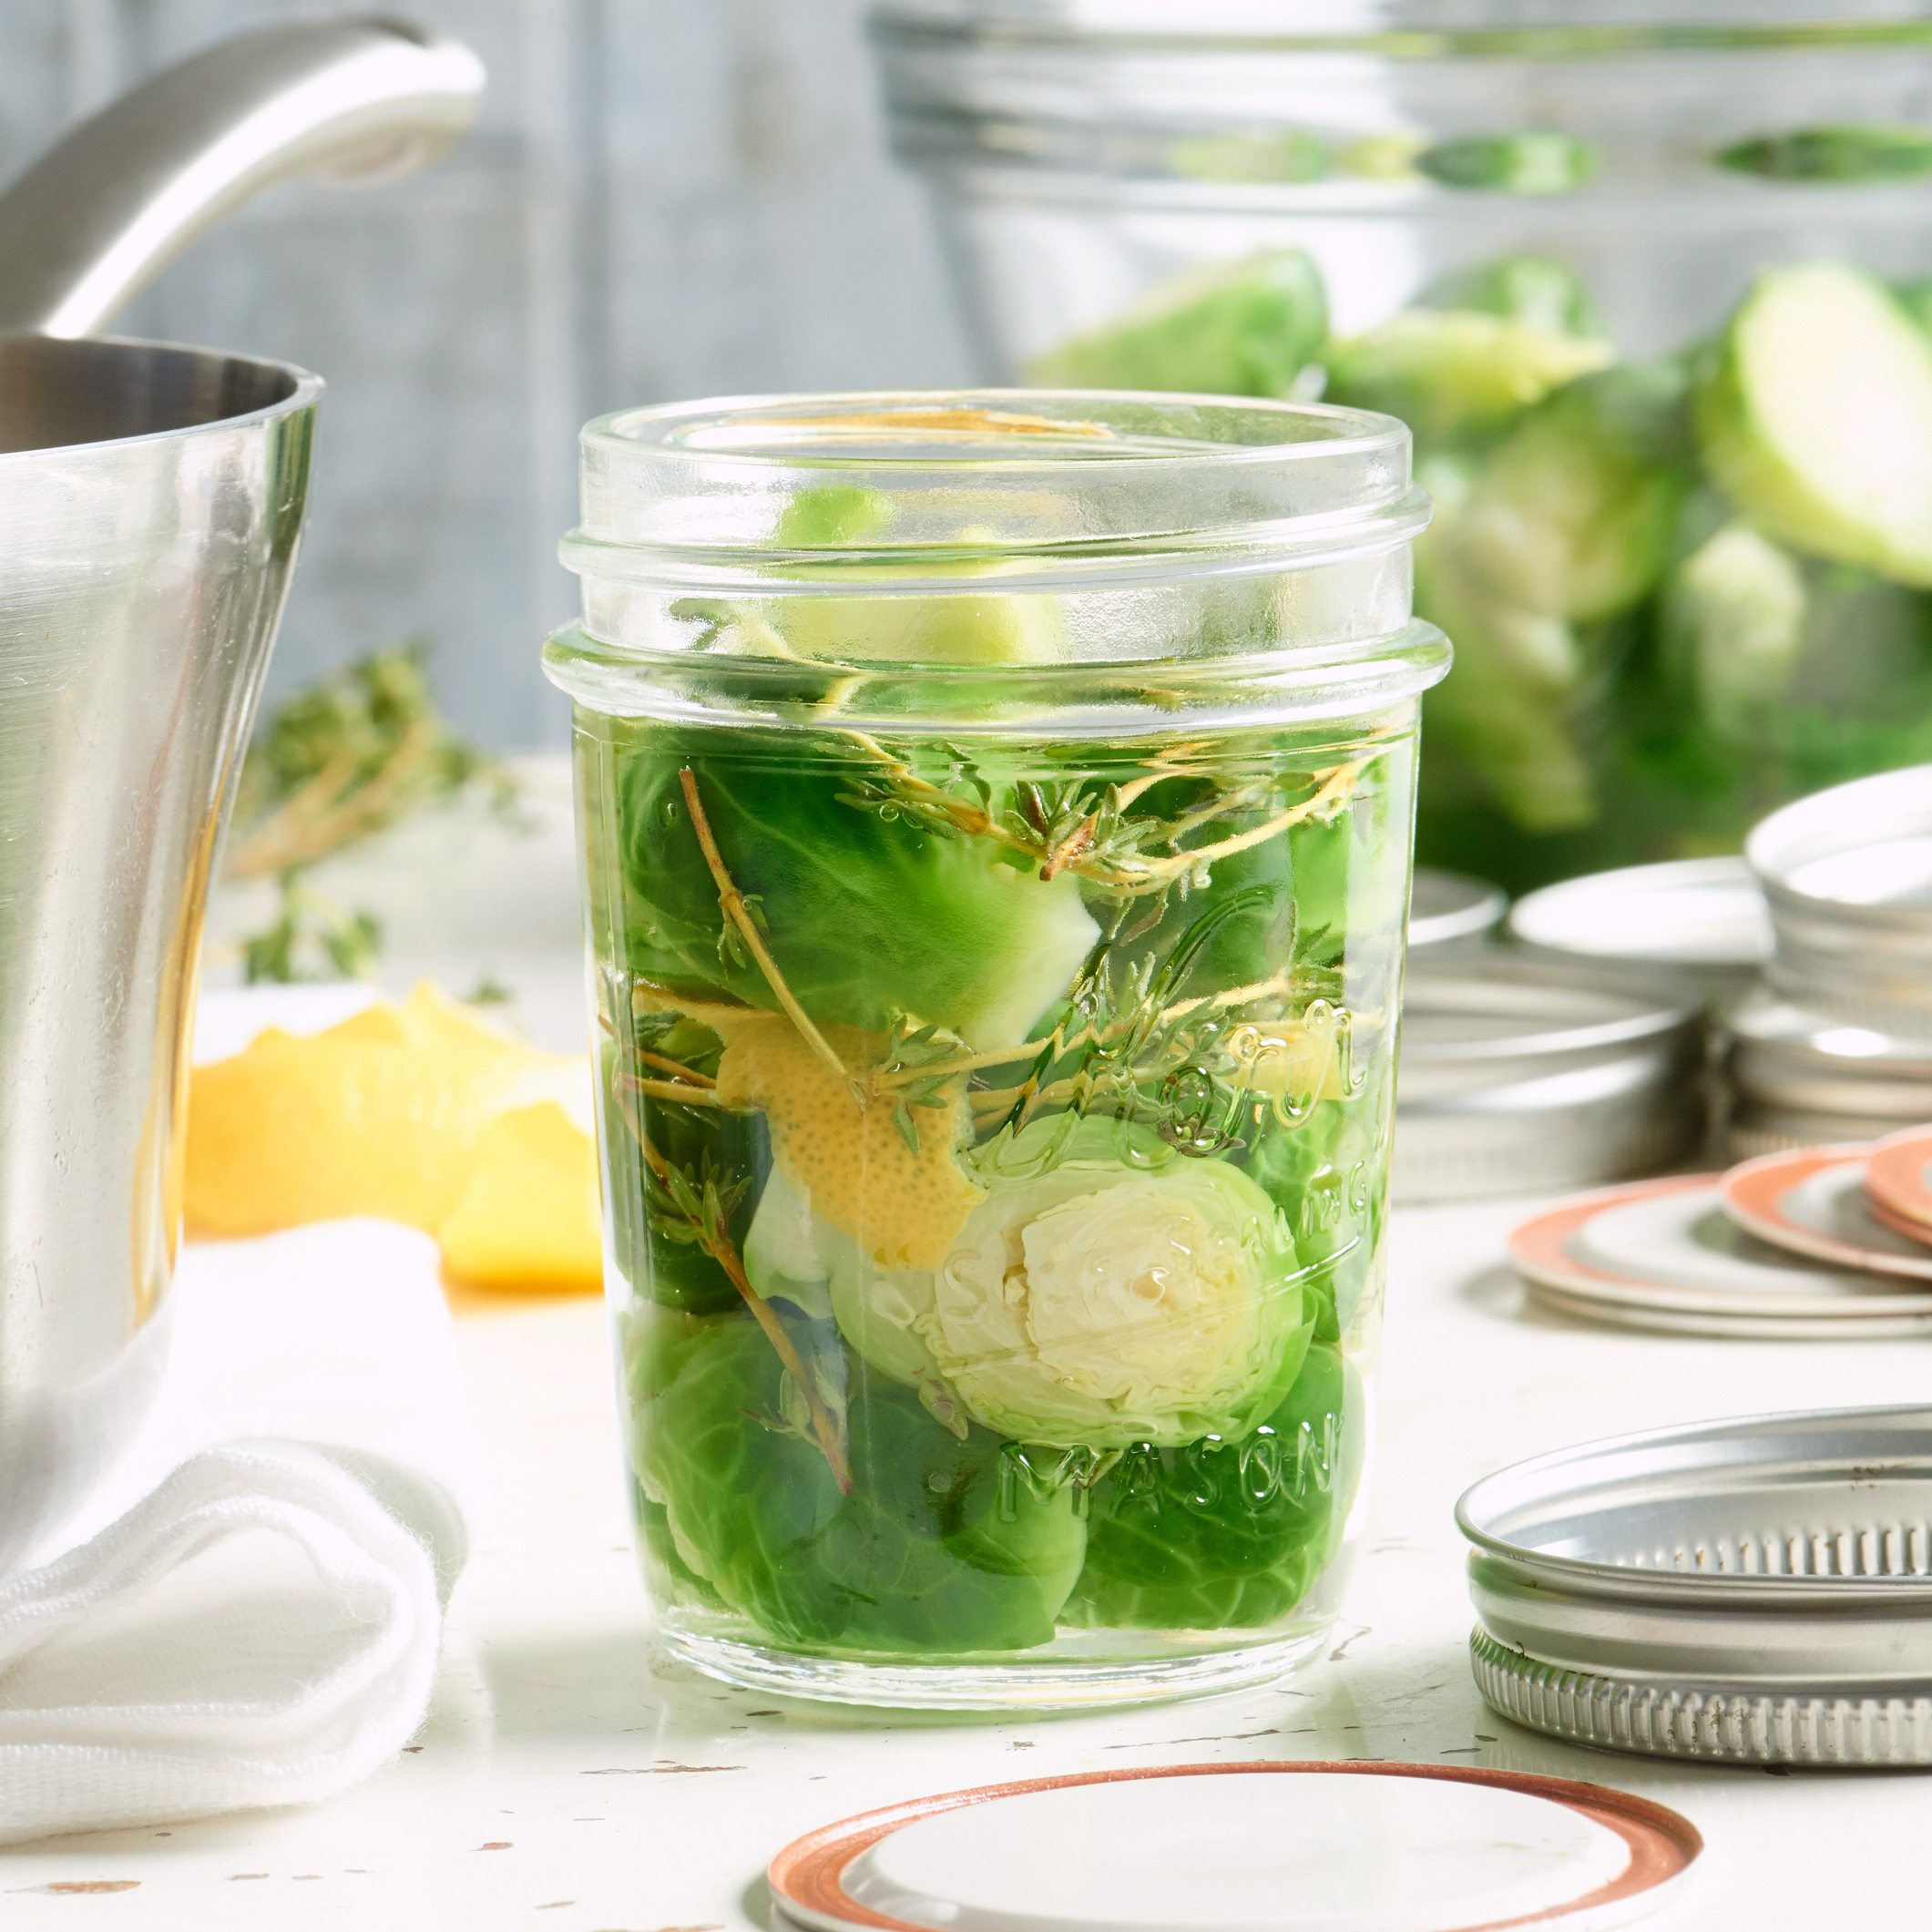 pickled lemon-thyme brussels sprouts in mason jar